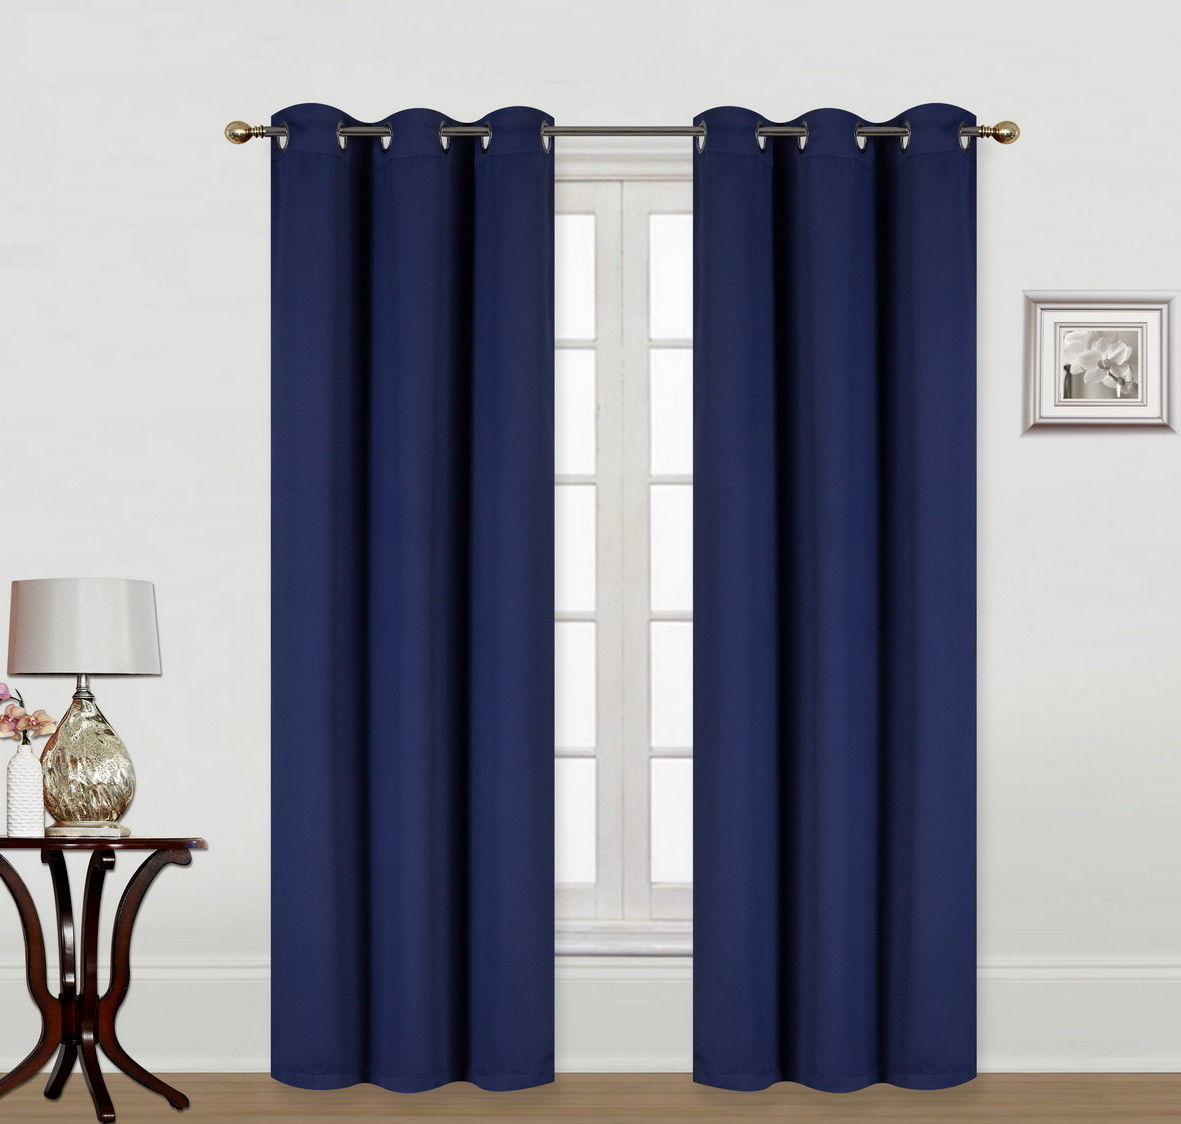 "(K68) NAVY BLUE 2-Piece Indoor and Outdoor Thermal Sun Blocking Grommet Window Curtain Set, Two (2) Panels 35"" x 84"" Each"